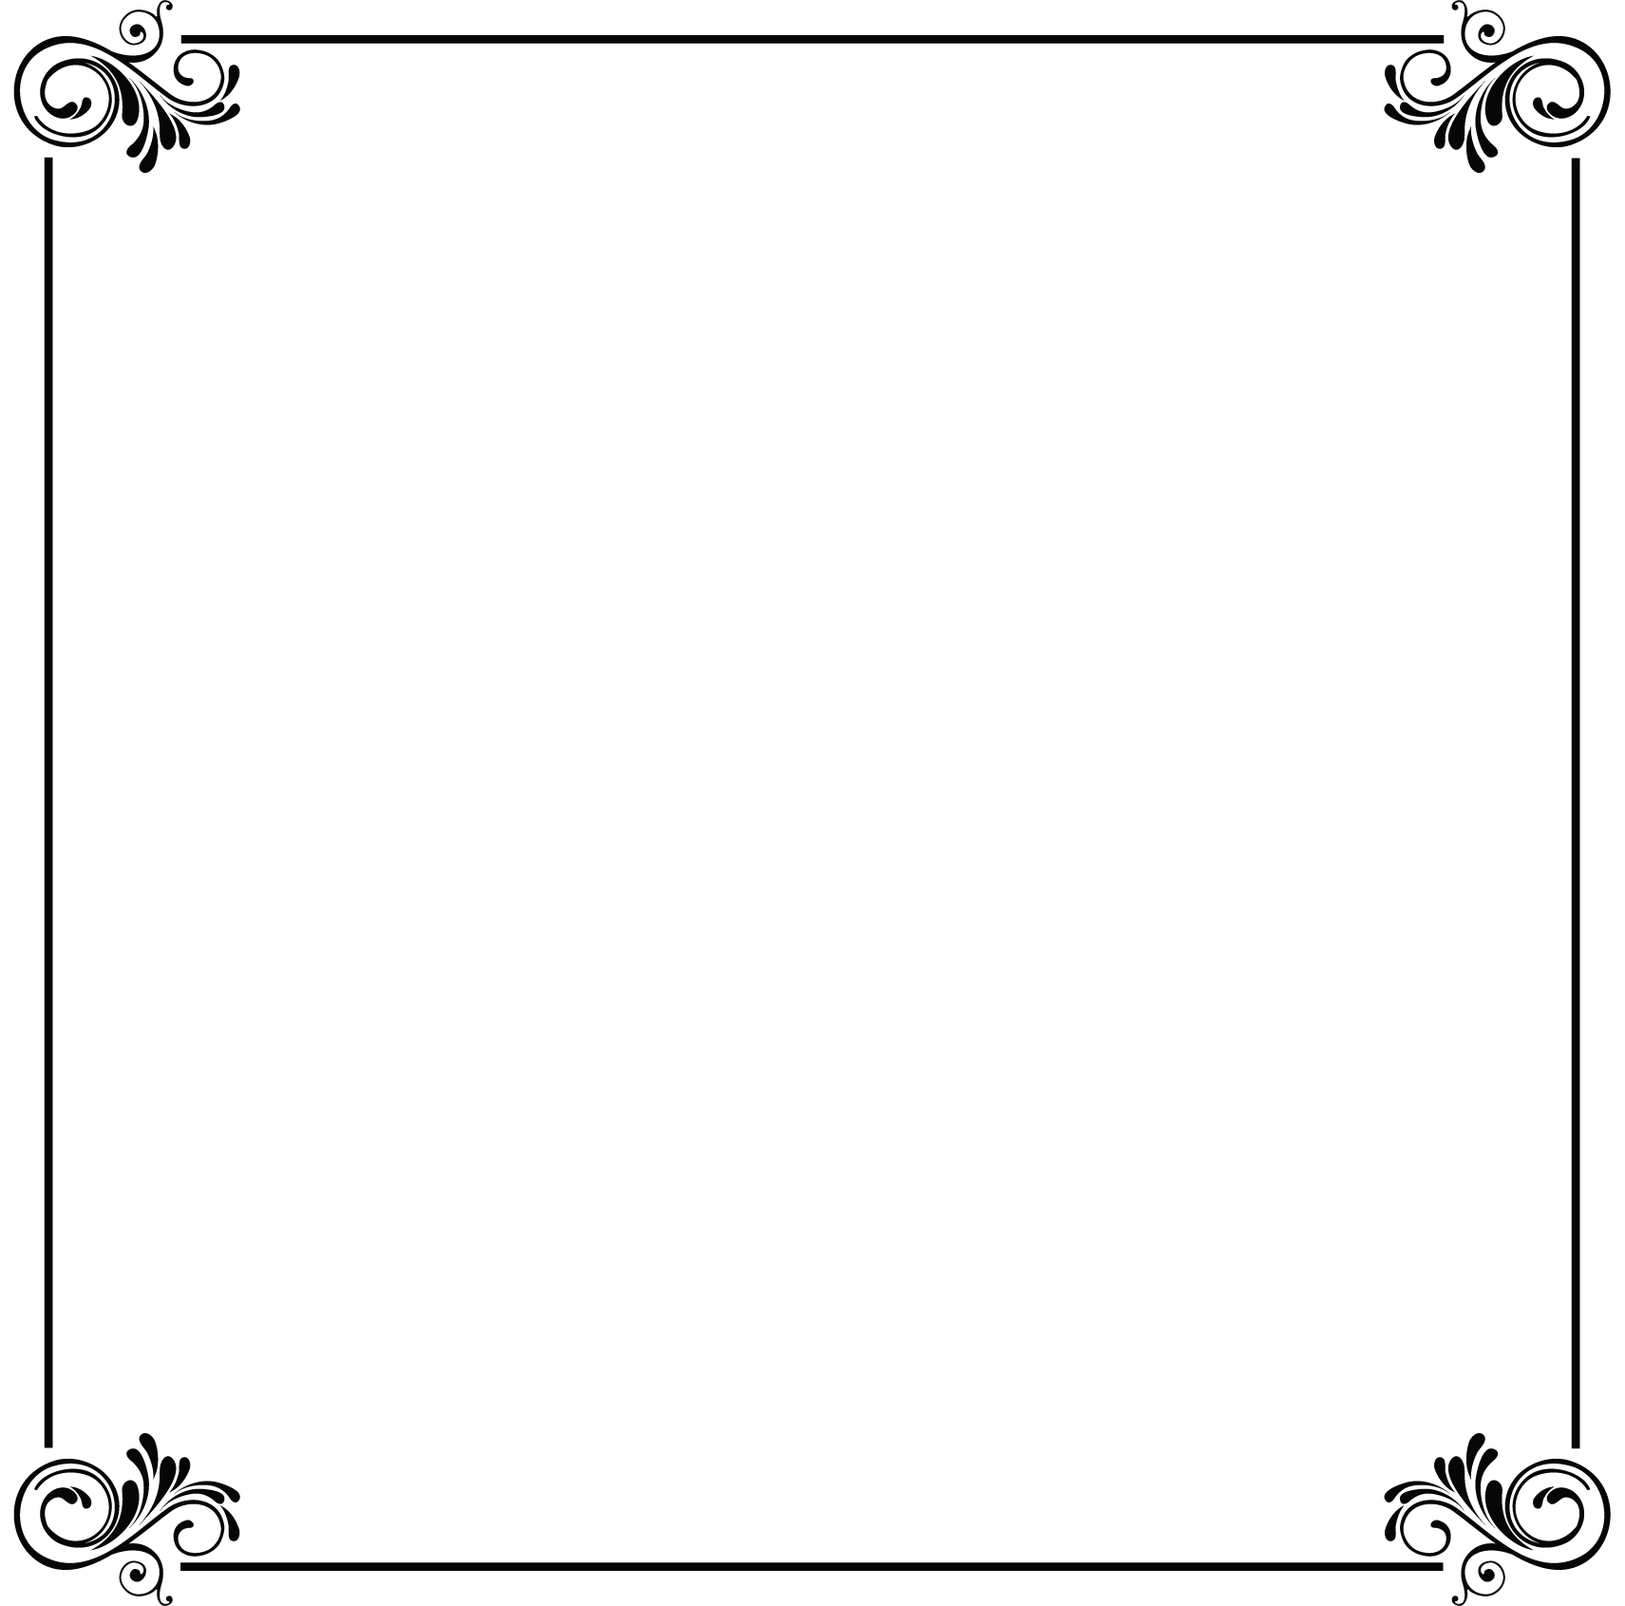 Foiled Card Blanks Craftstyle Products Ltd Clipart.